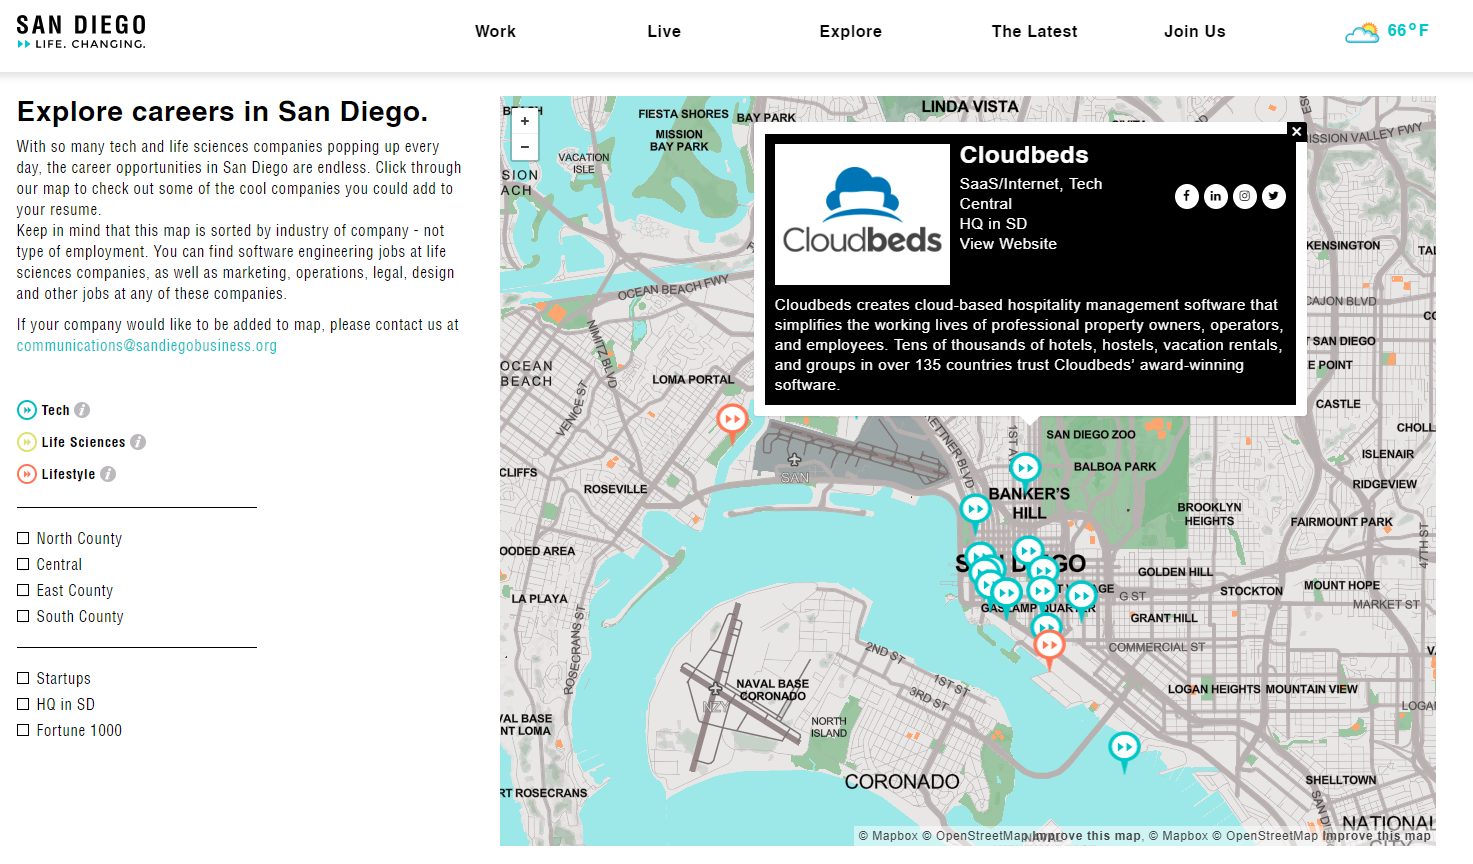 San Diego: Life. Changing. Map of Companies in San Diego